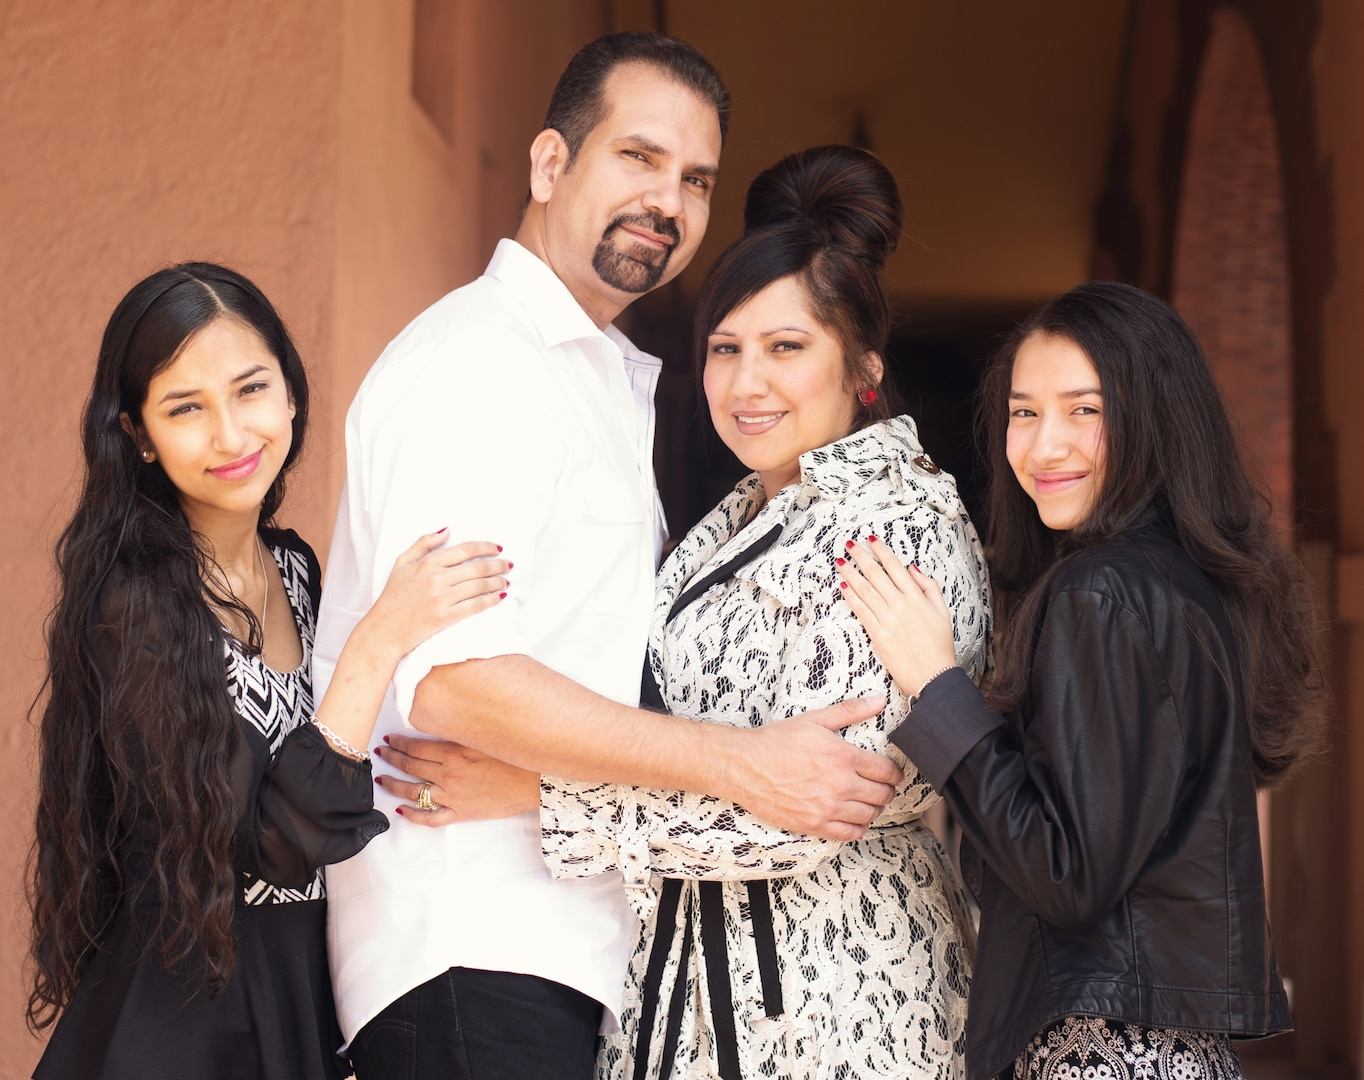 A family poses together with a mother, father and two daughters.